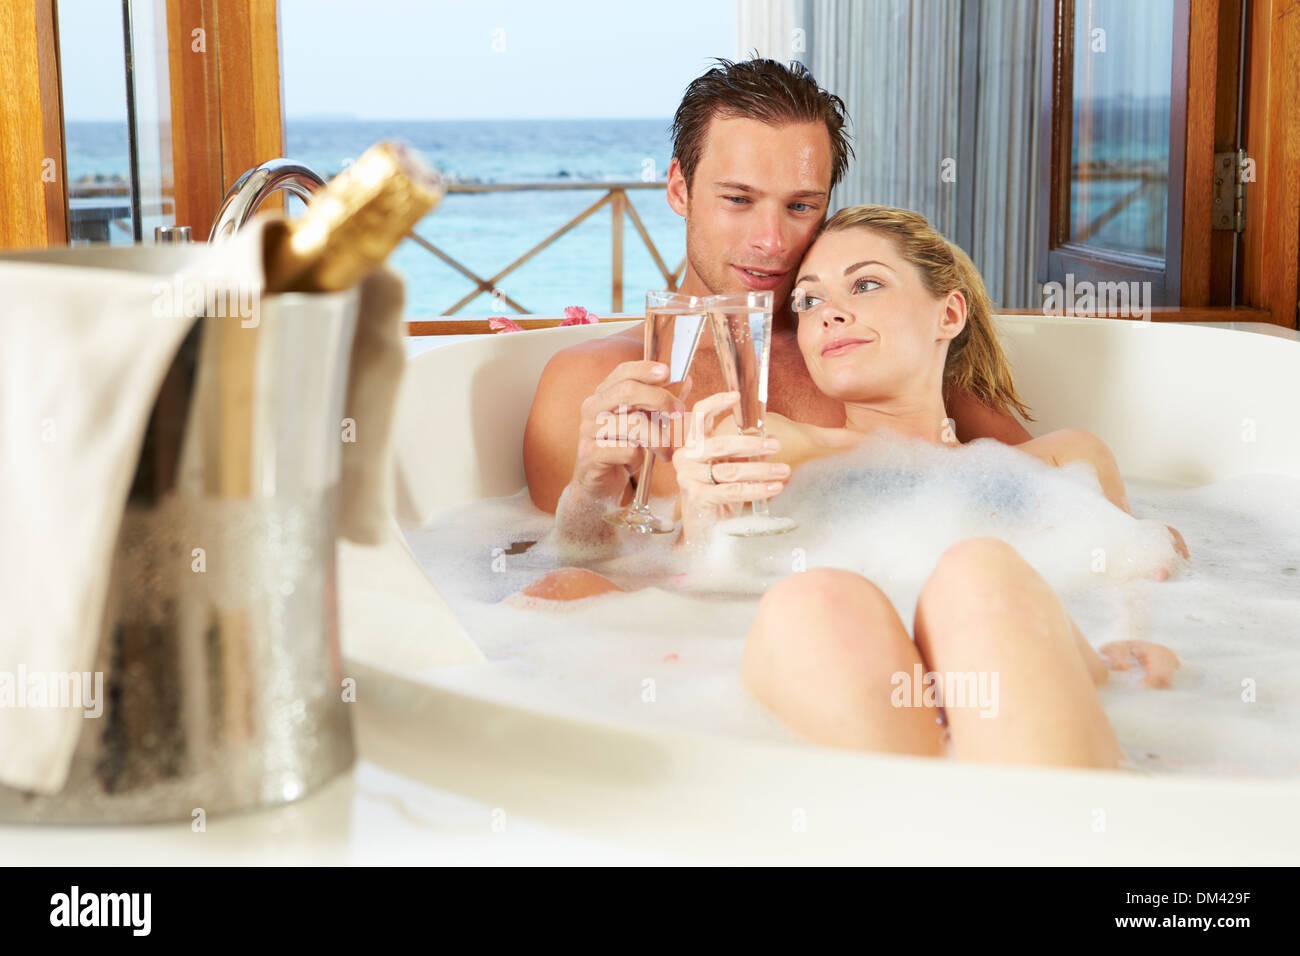 Couple Relaxing In Bath Drinking Champagne Together Stock Photo Alamy